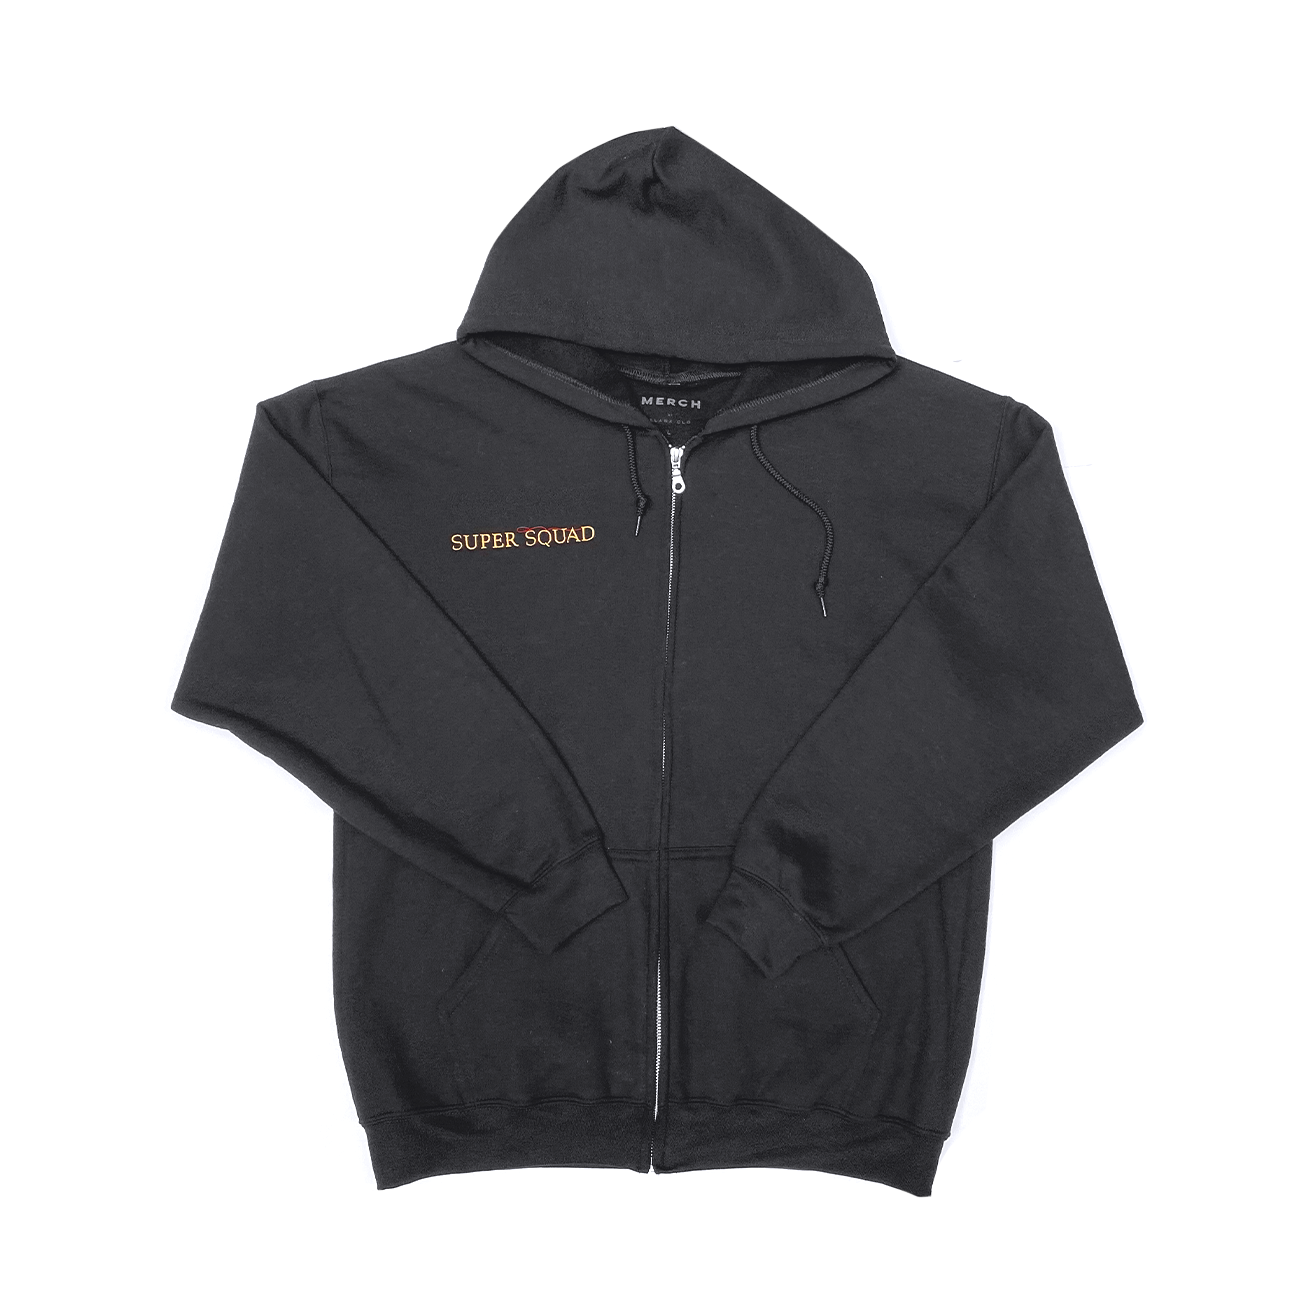 SUPER SQUAD ZIP UP HOODIE BLACK